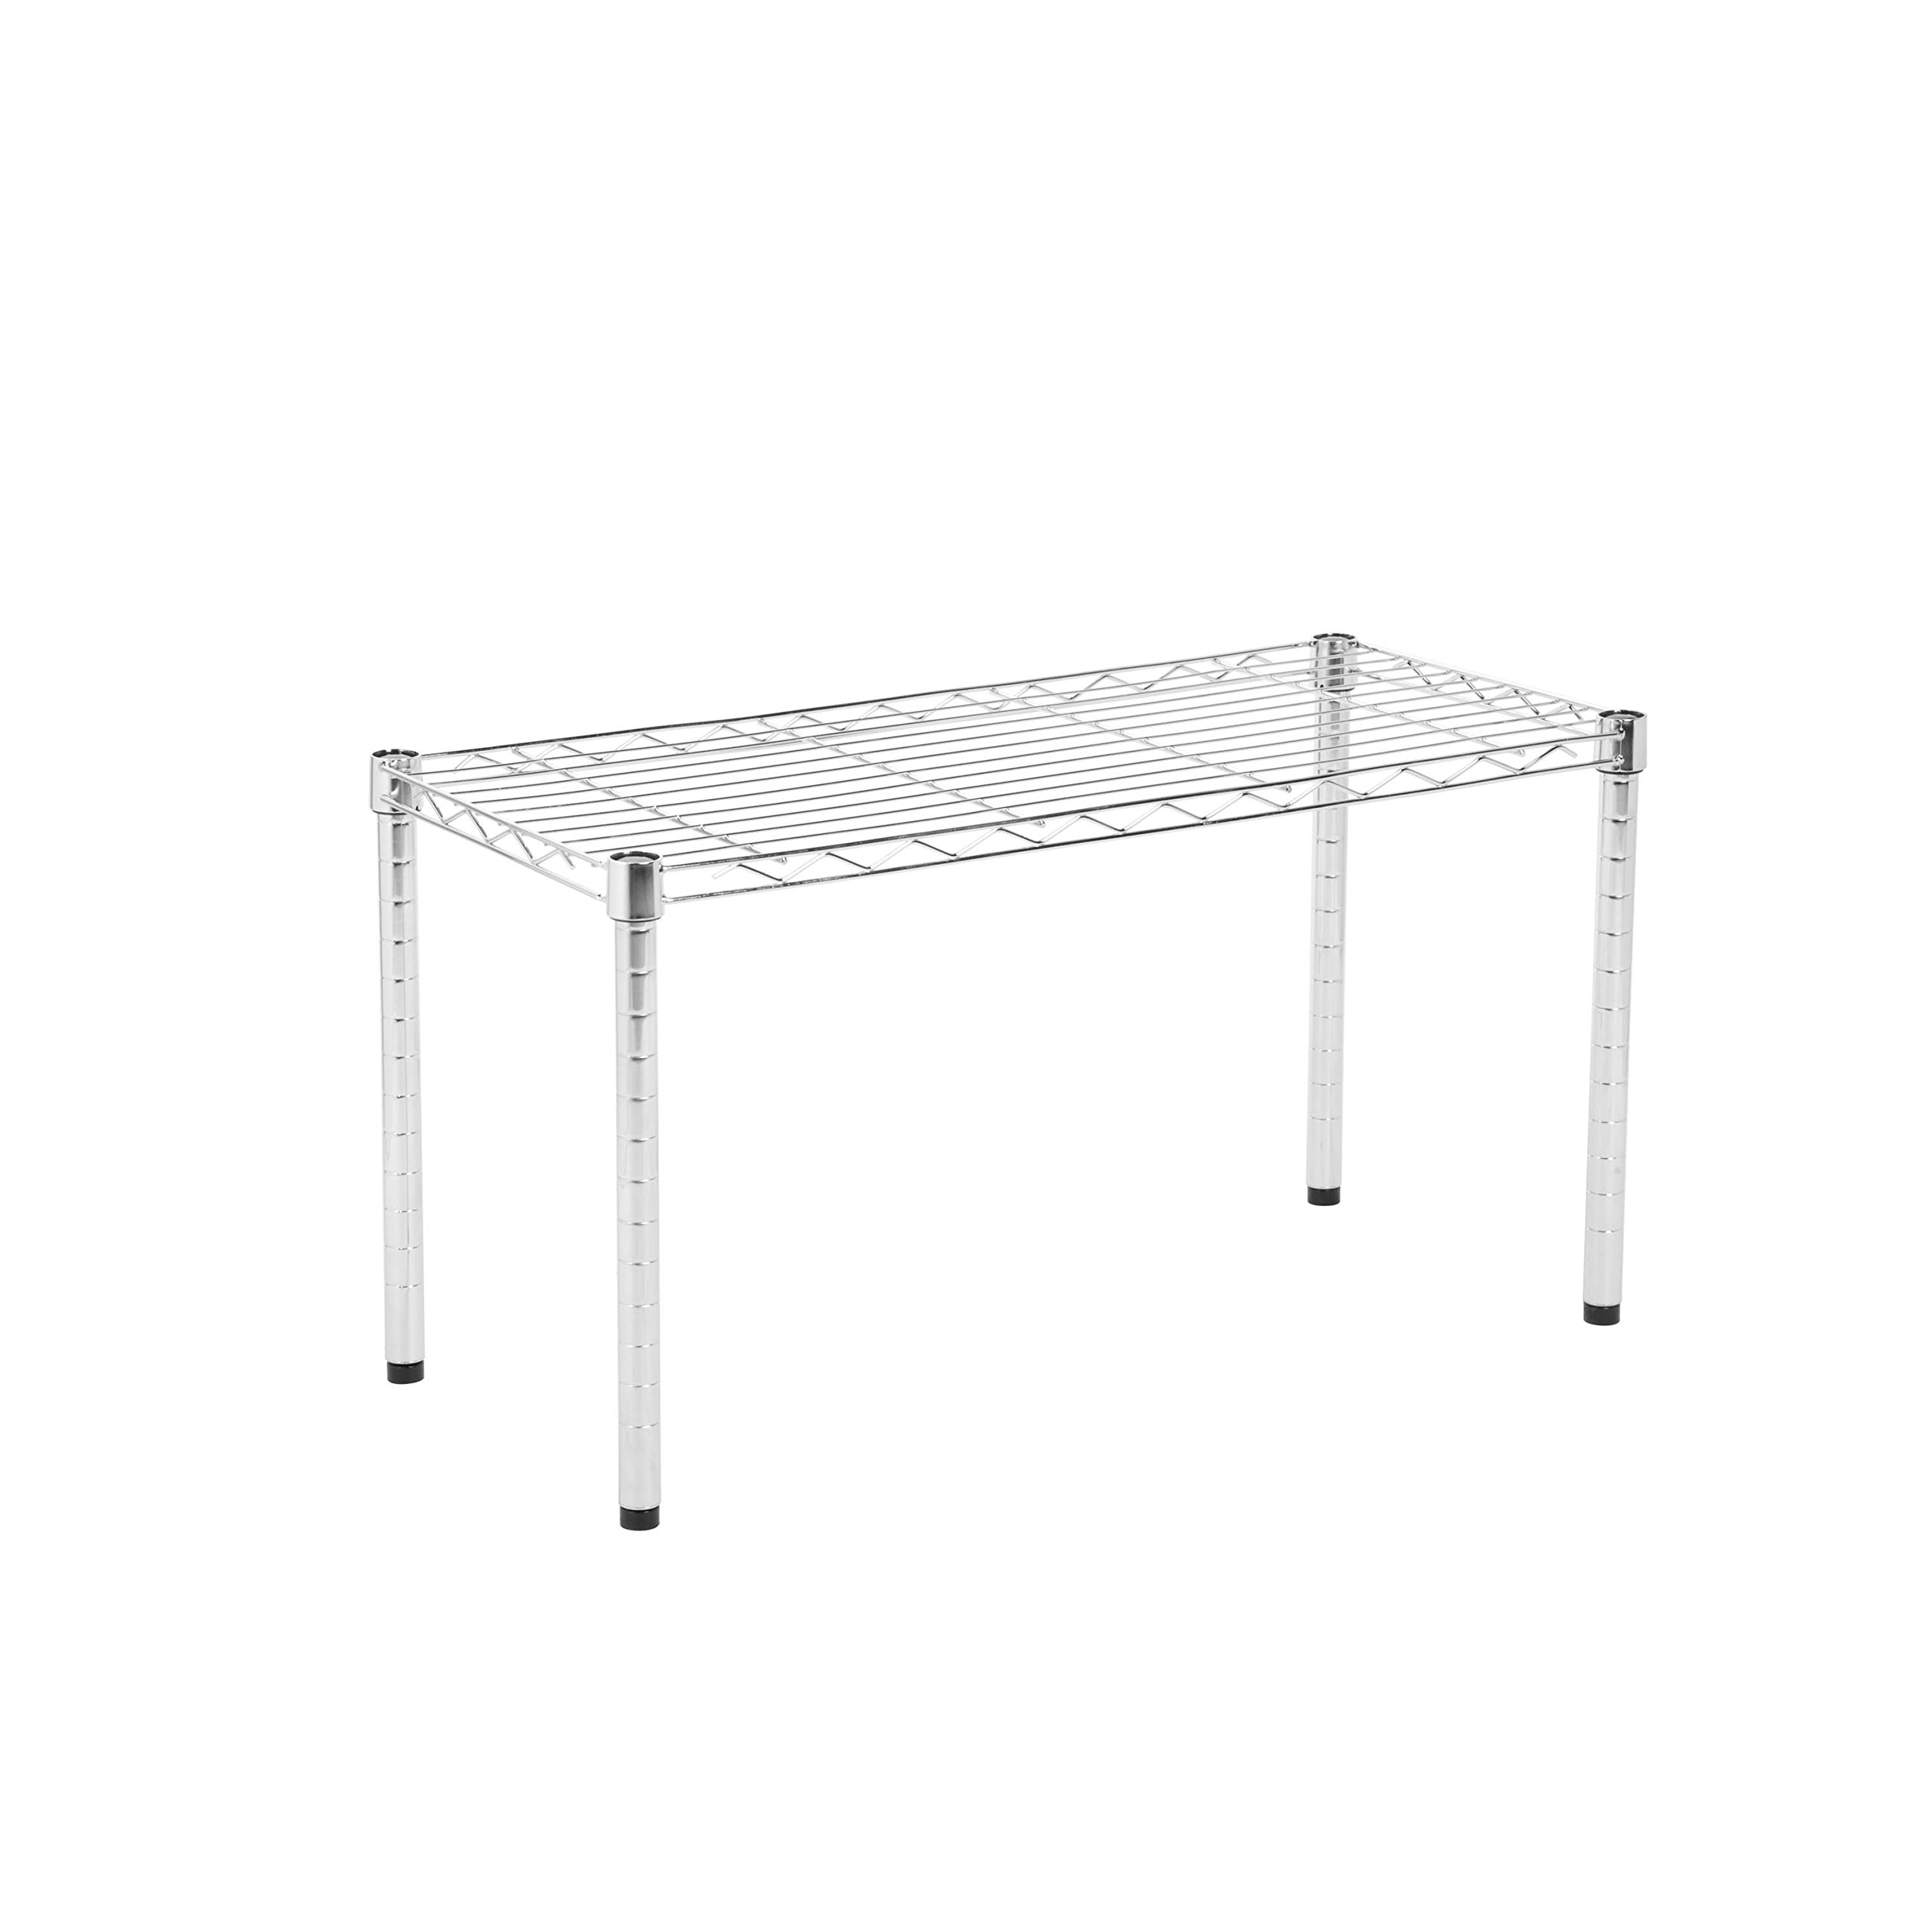 Honey-Can-Do SHF-01505 Stackable Metal Urban Shelving Side Table, Chrome,14 x 30